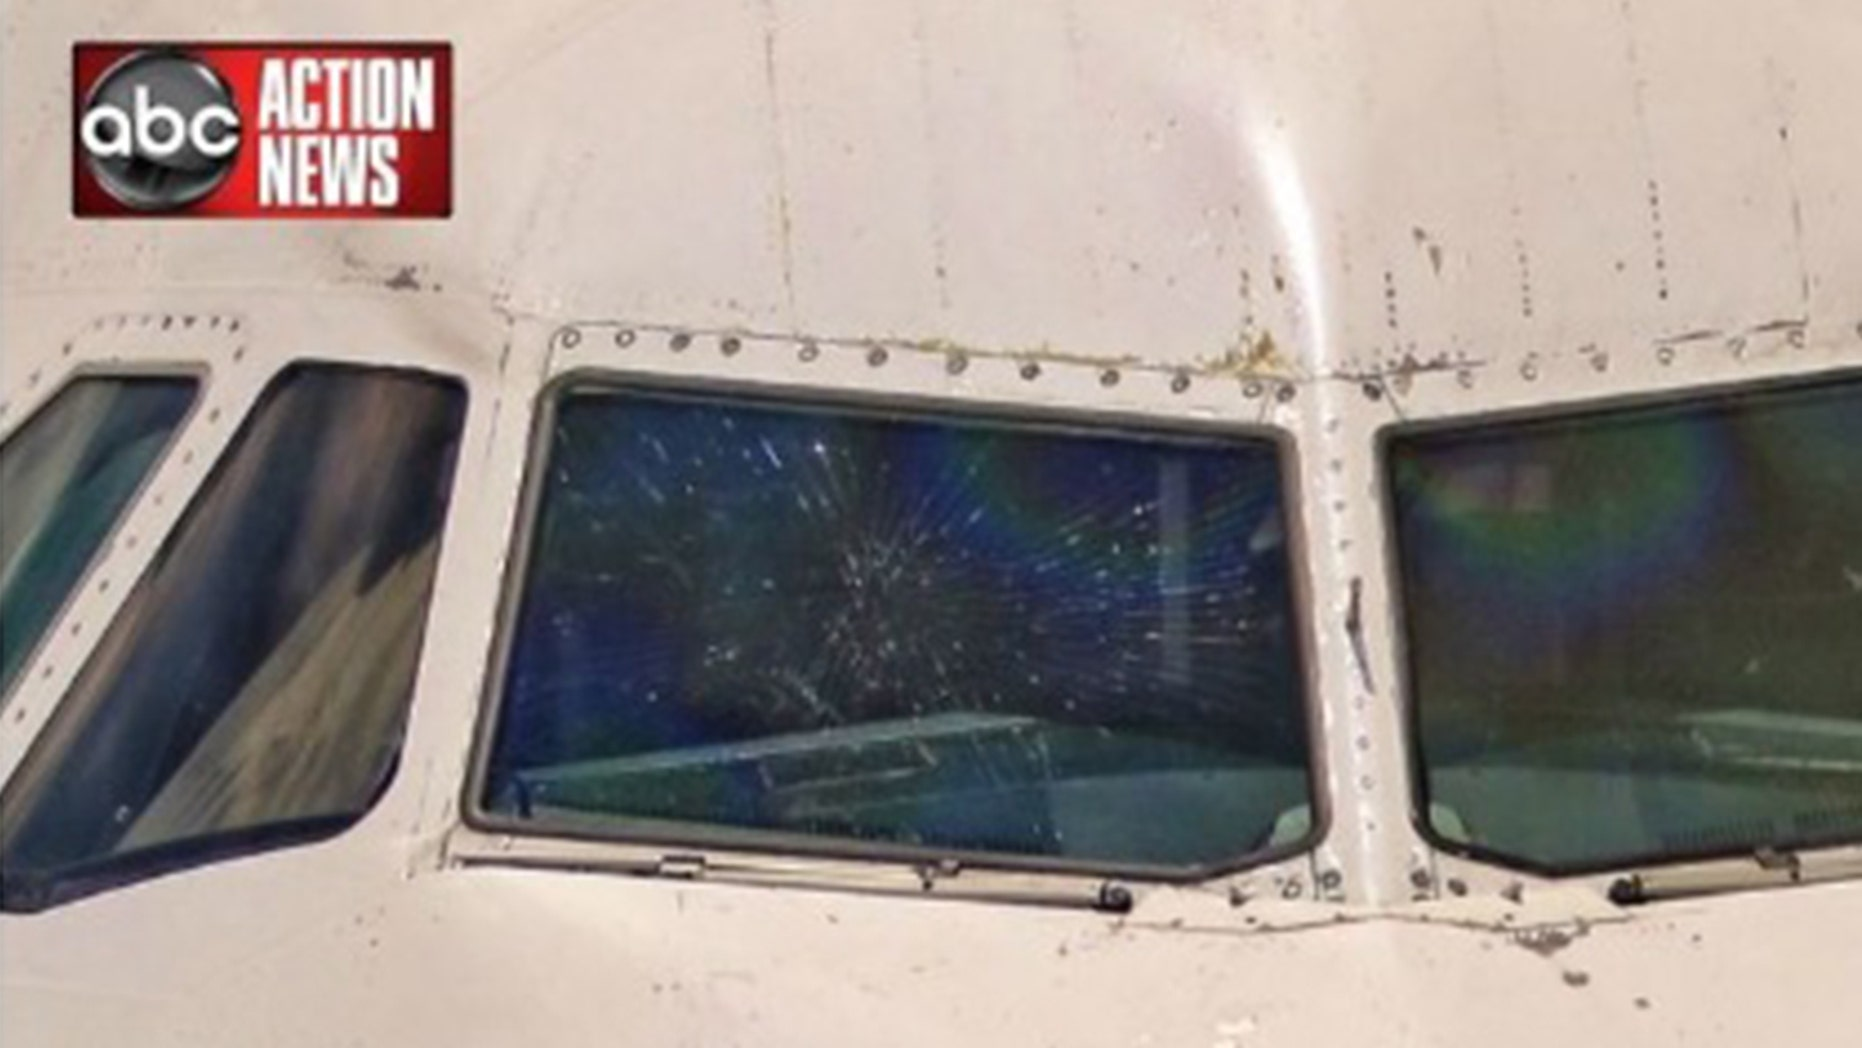 A JetBlue plane made an emergency landing in Fort Lauderdale, Fla. after the cockpit window cracked.